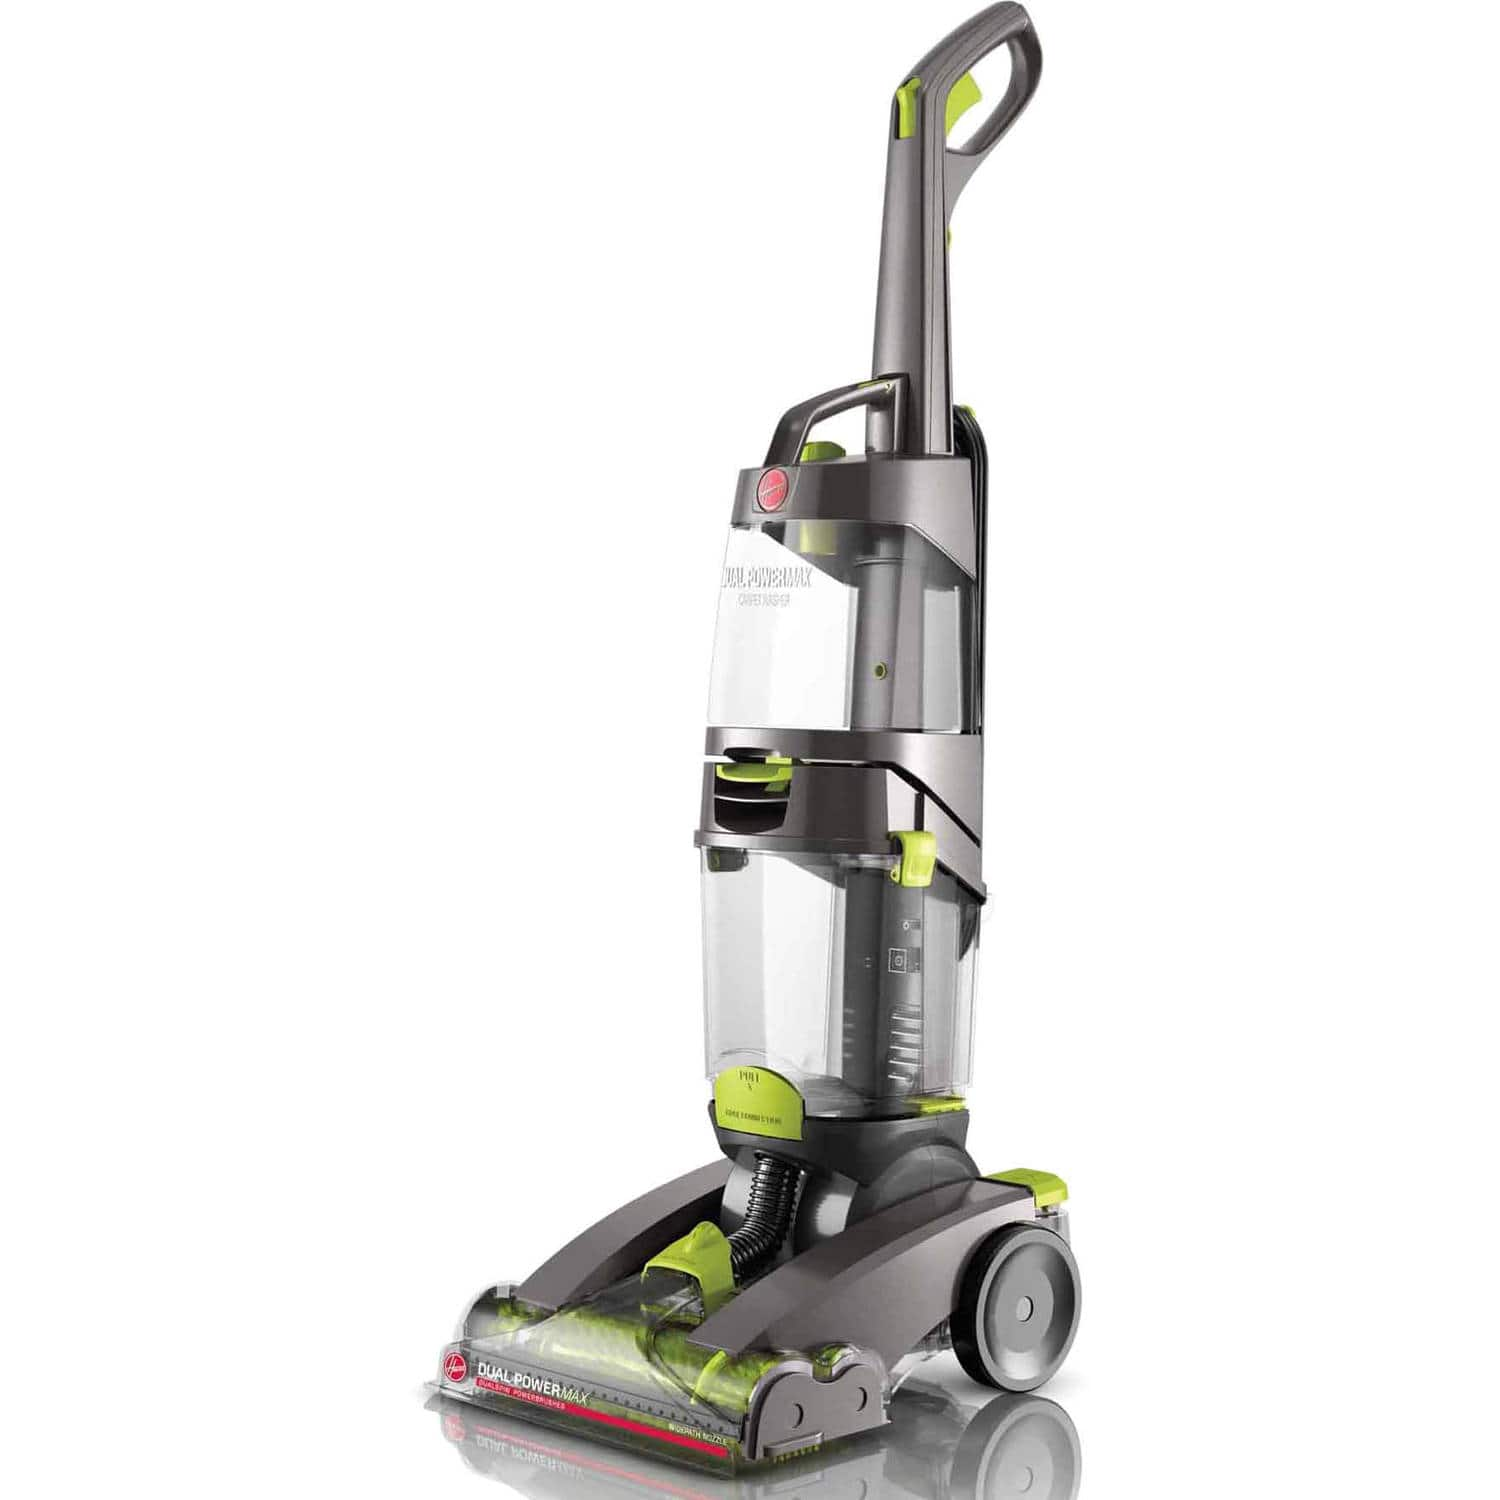 Hoover Dual Power Max Pet Carpet Cleaner on rollback for $99.00